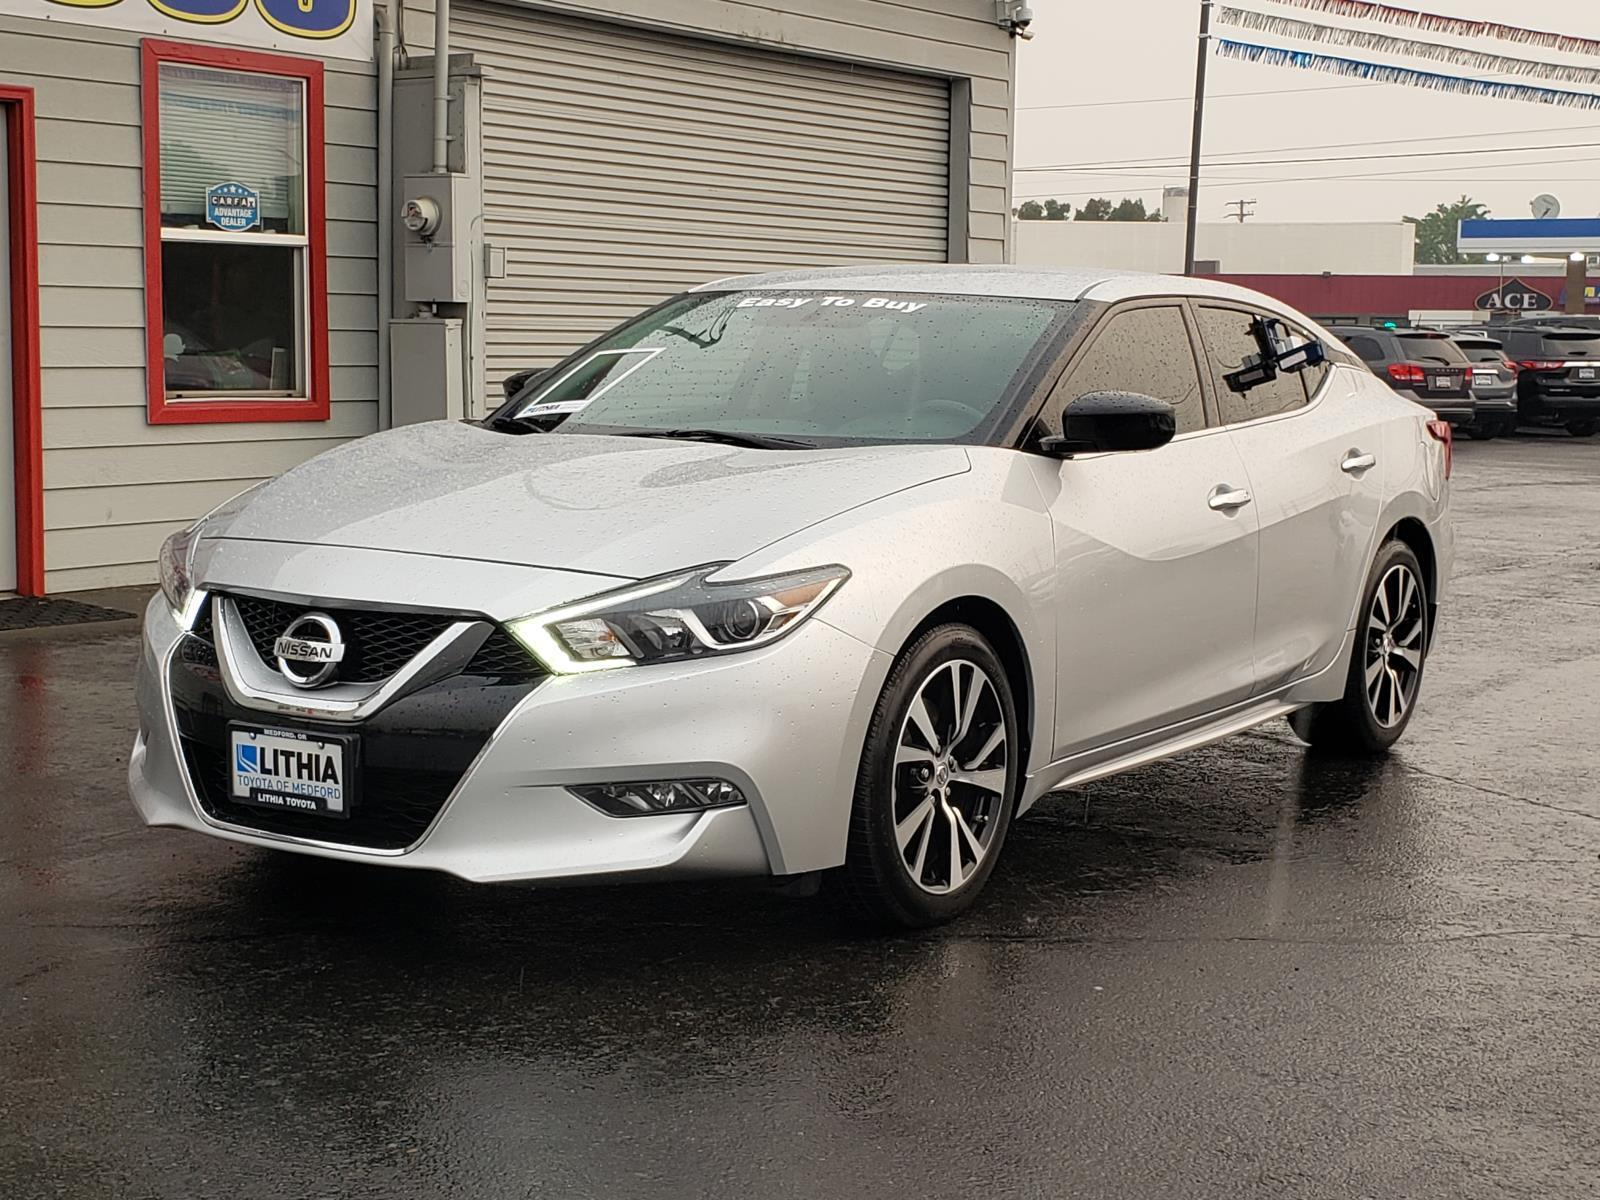 used 2017 Nissan Maxima car, priced at $21,995